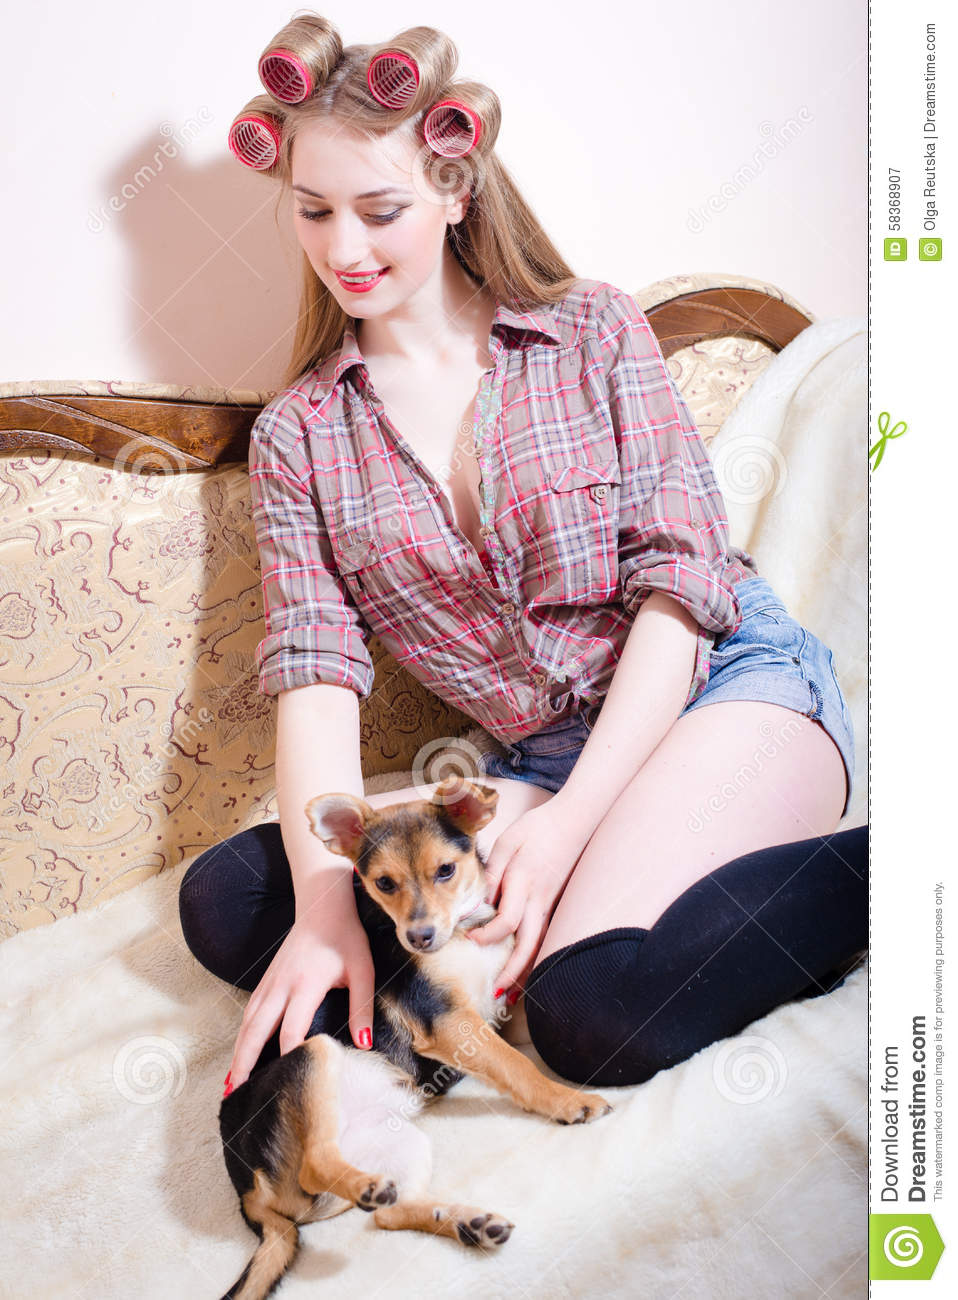 sexi young beautiful girl stroking a dog stock image - image of cute